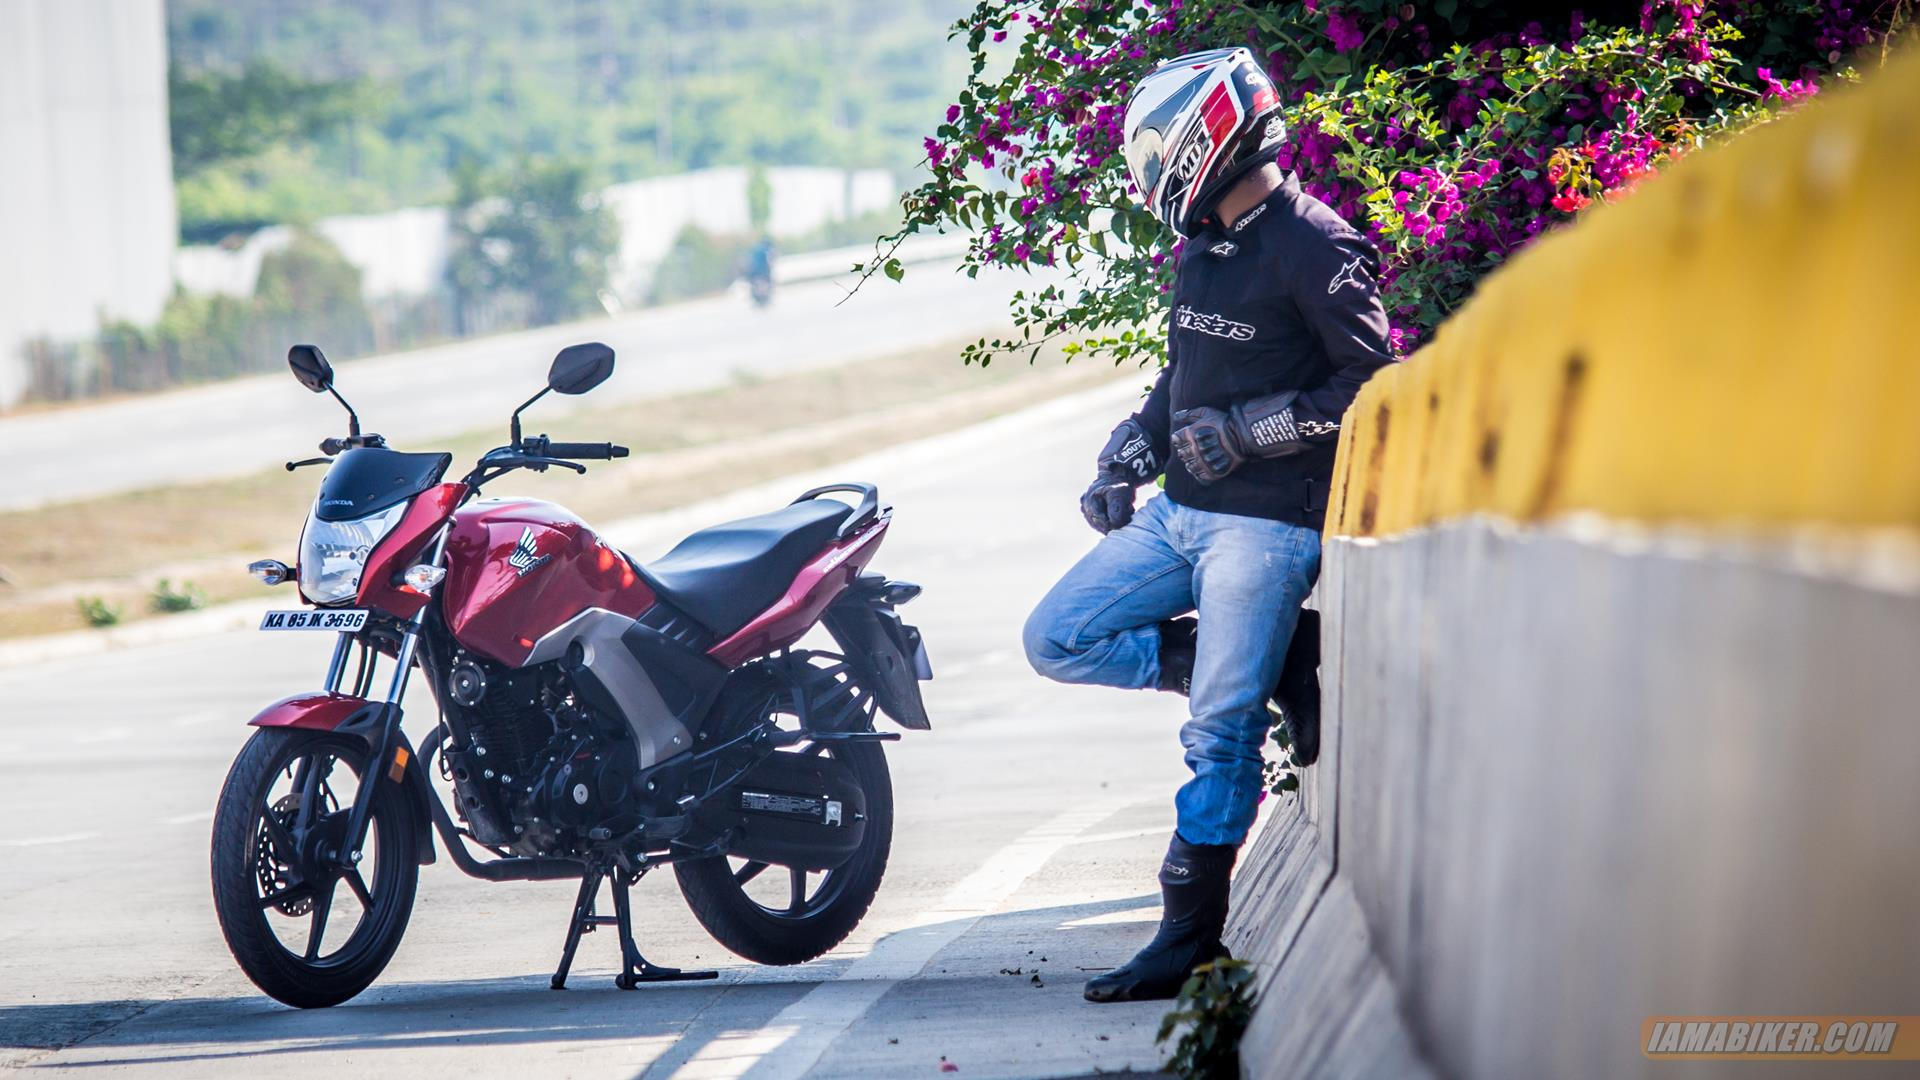 Honda CB Unicorn 160 CBS review